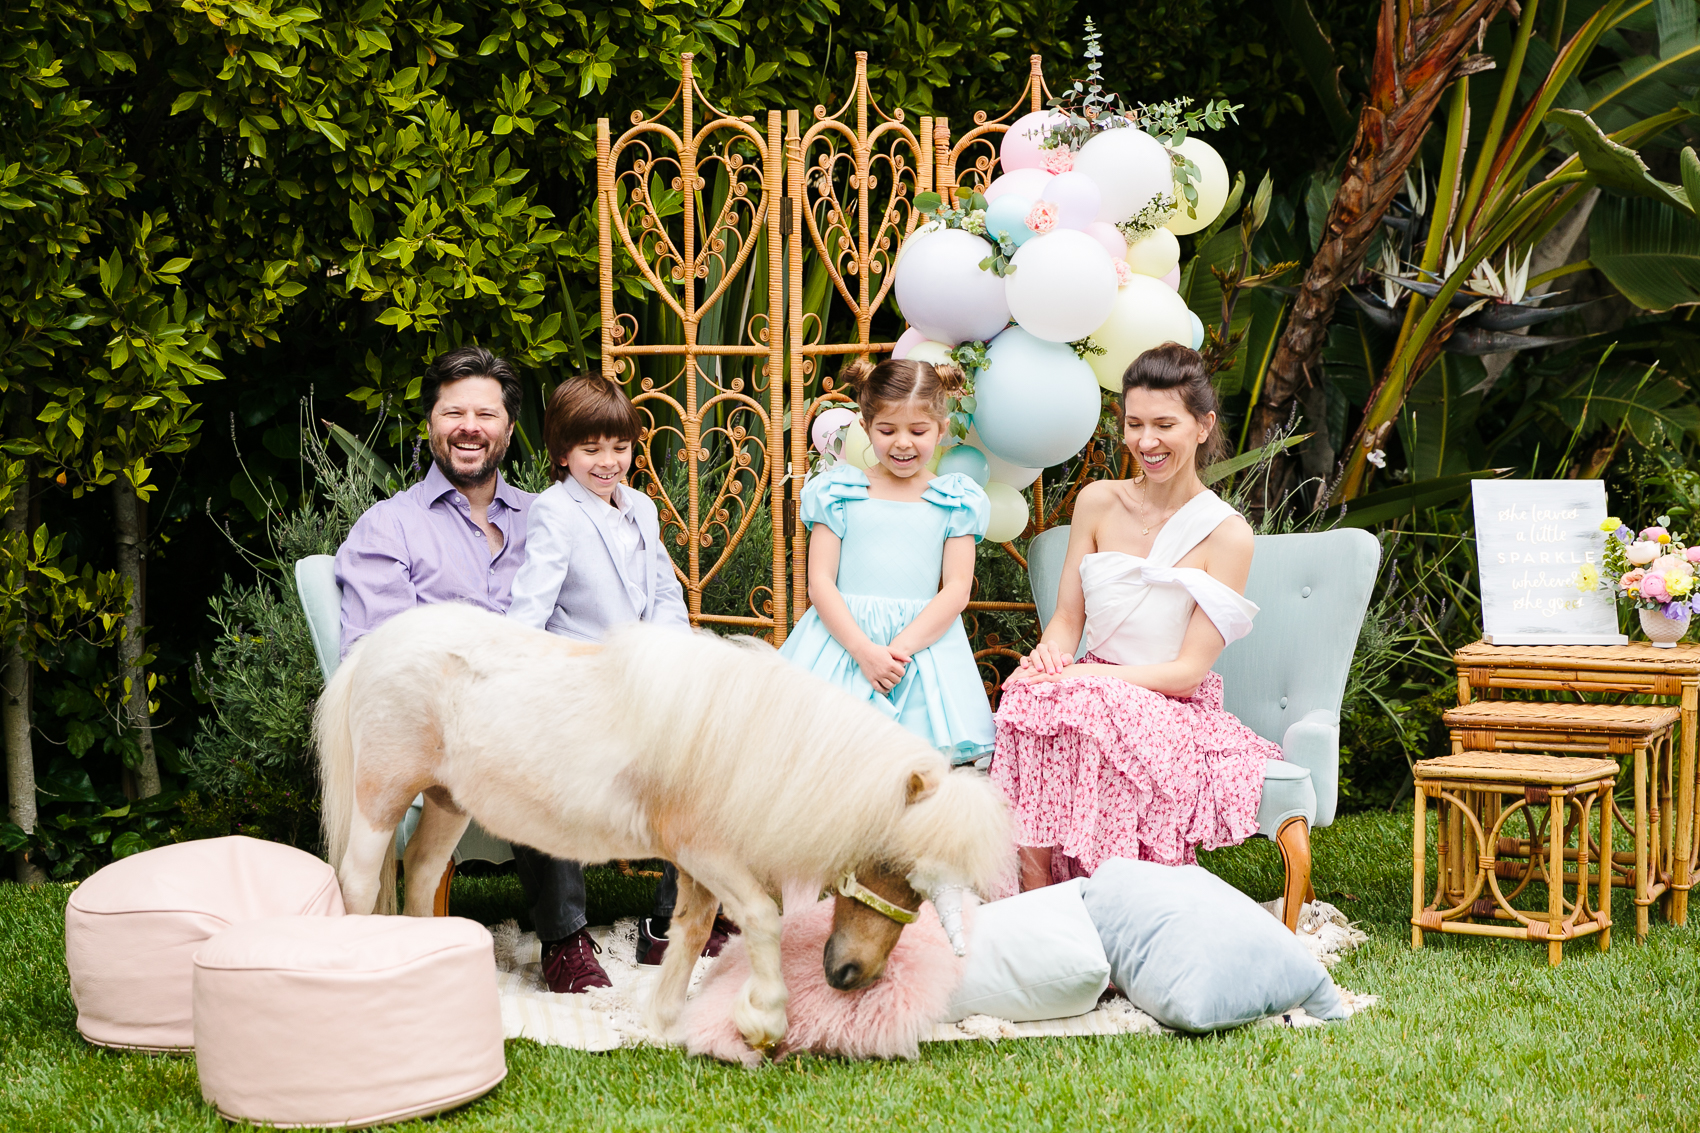 Los_Angeles_Family_Photographer_Luxury_Childrens_Party_Beverly_Hills_Unicorn_Birthday_Party-0282.jpg